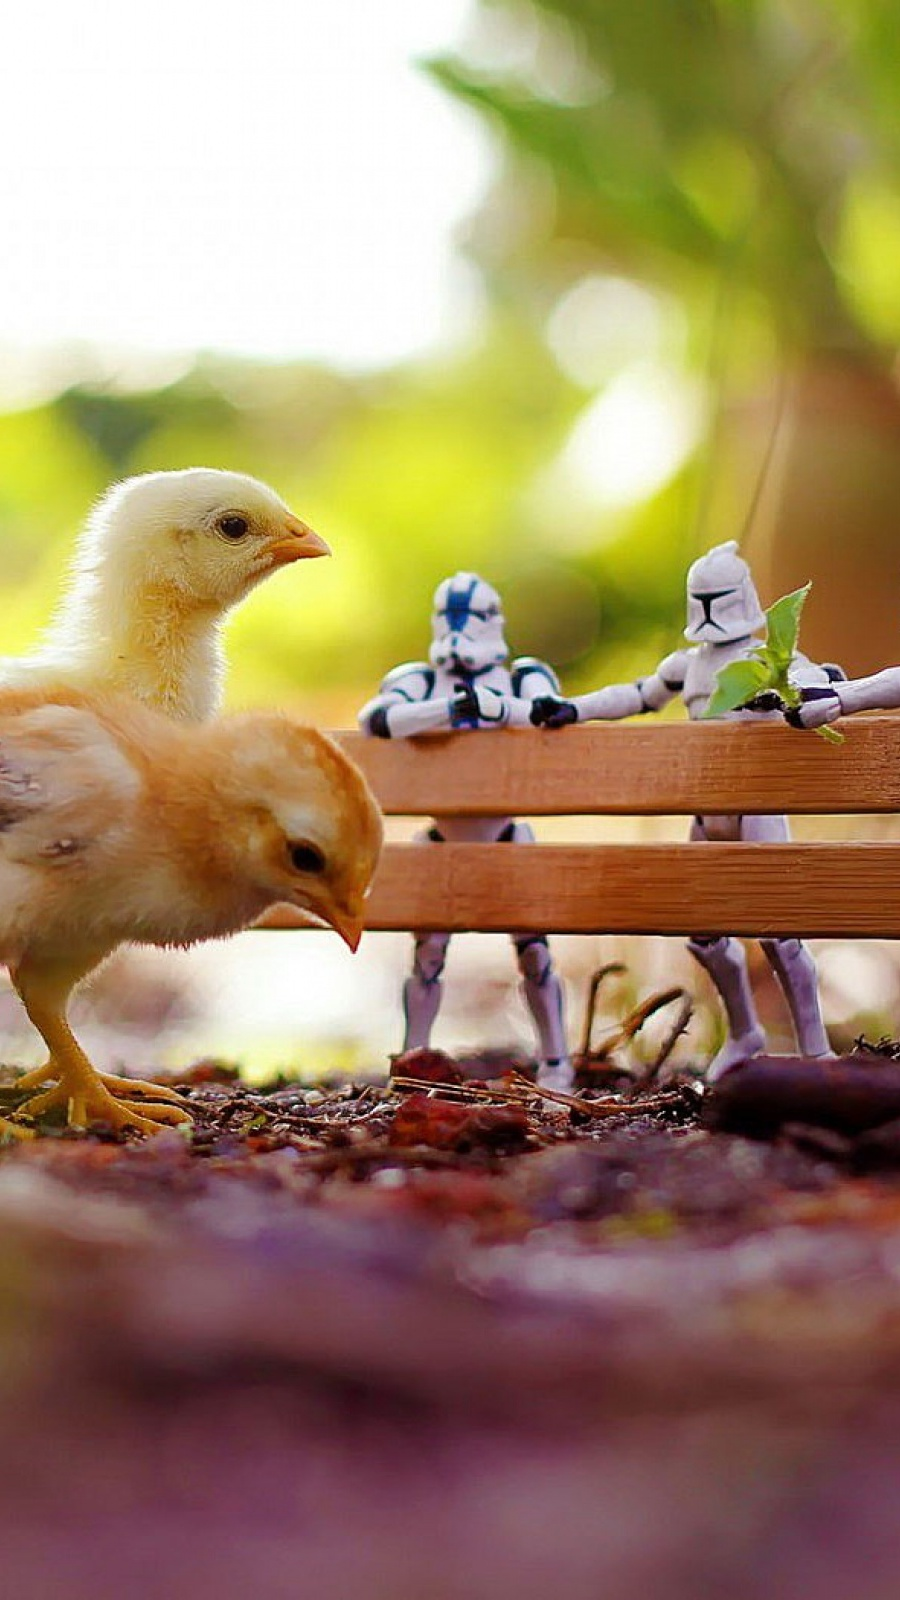 Chickens Star Wars Toys Bokeh Mobile Wallpaper Mobiles Wall